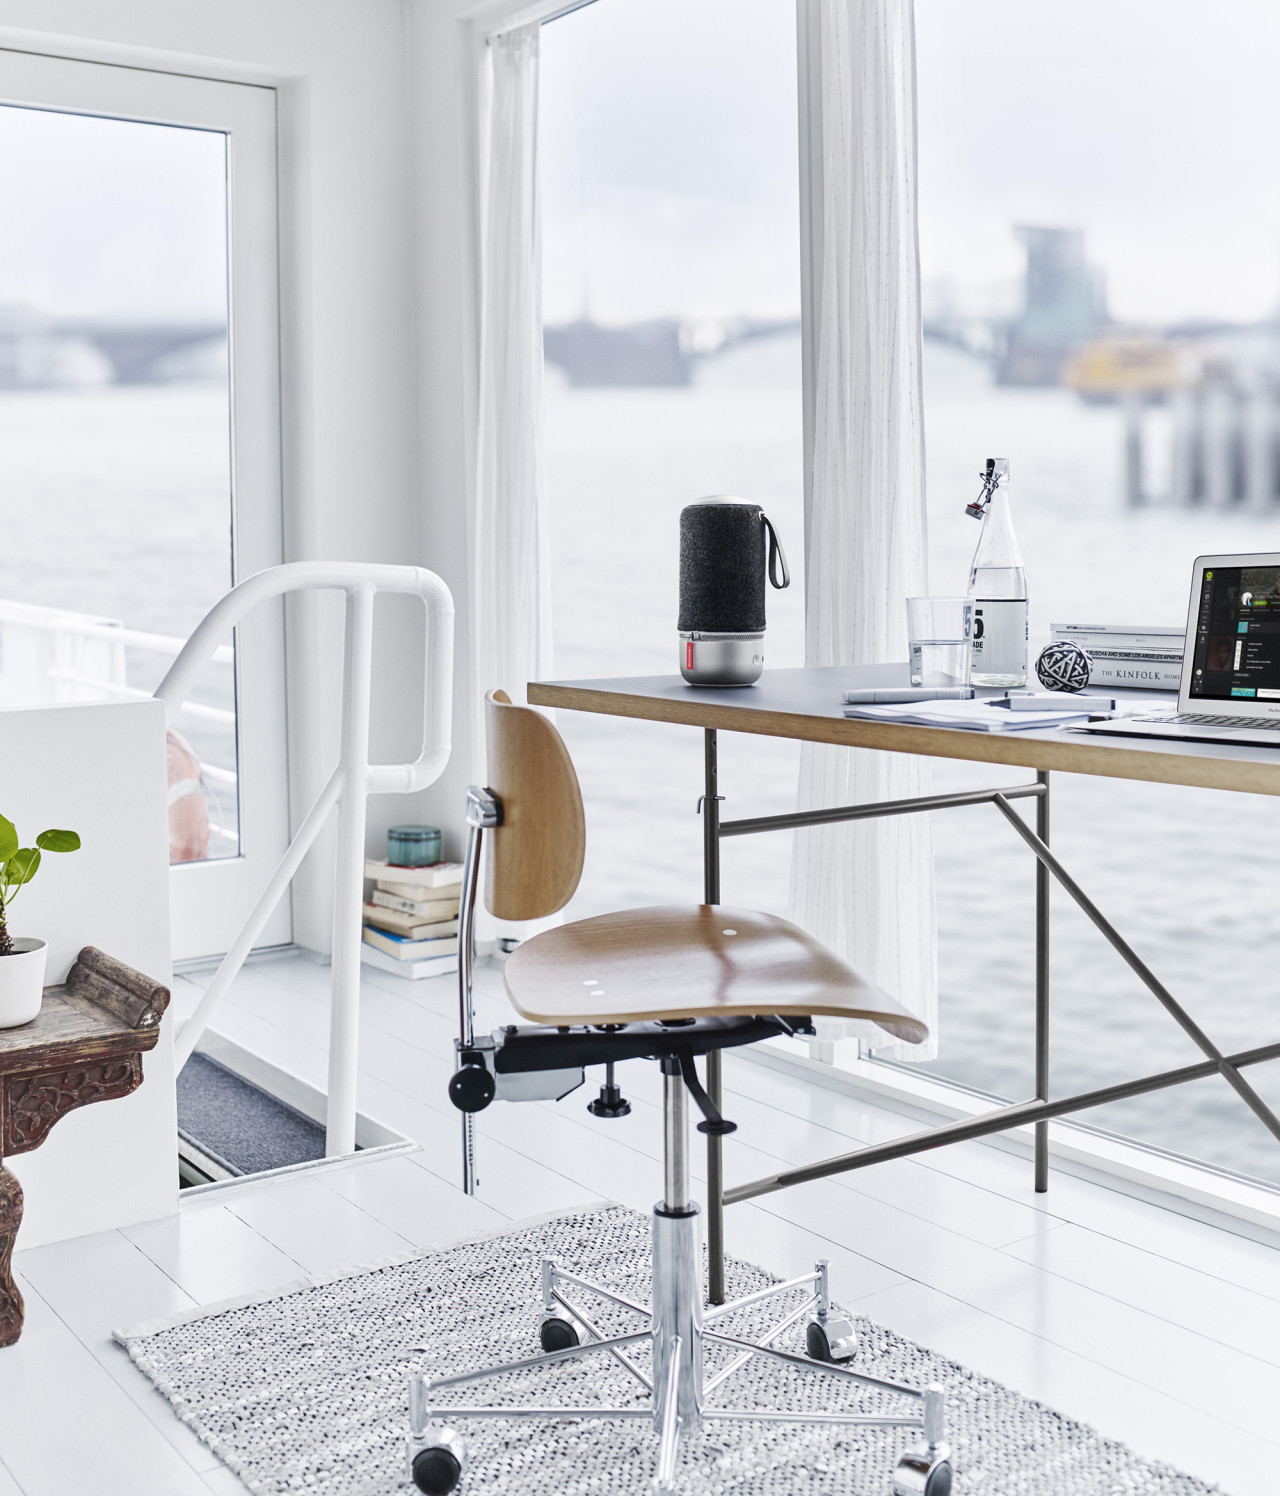 Small Size, Big Sound With the Libratone ZIPP and ZIPP MINI Copenhagen Edition